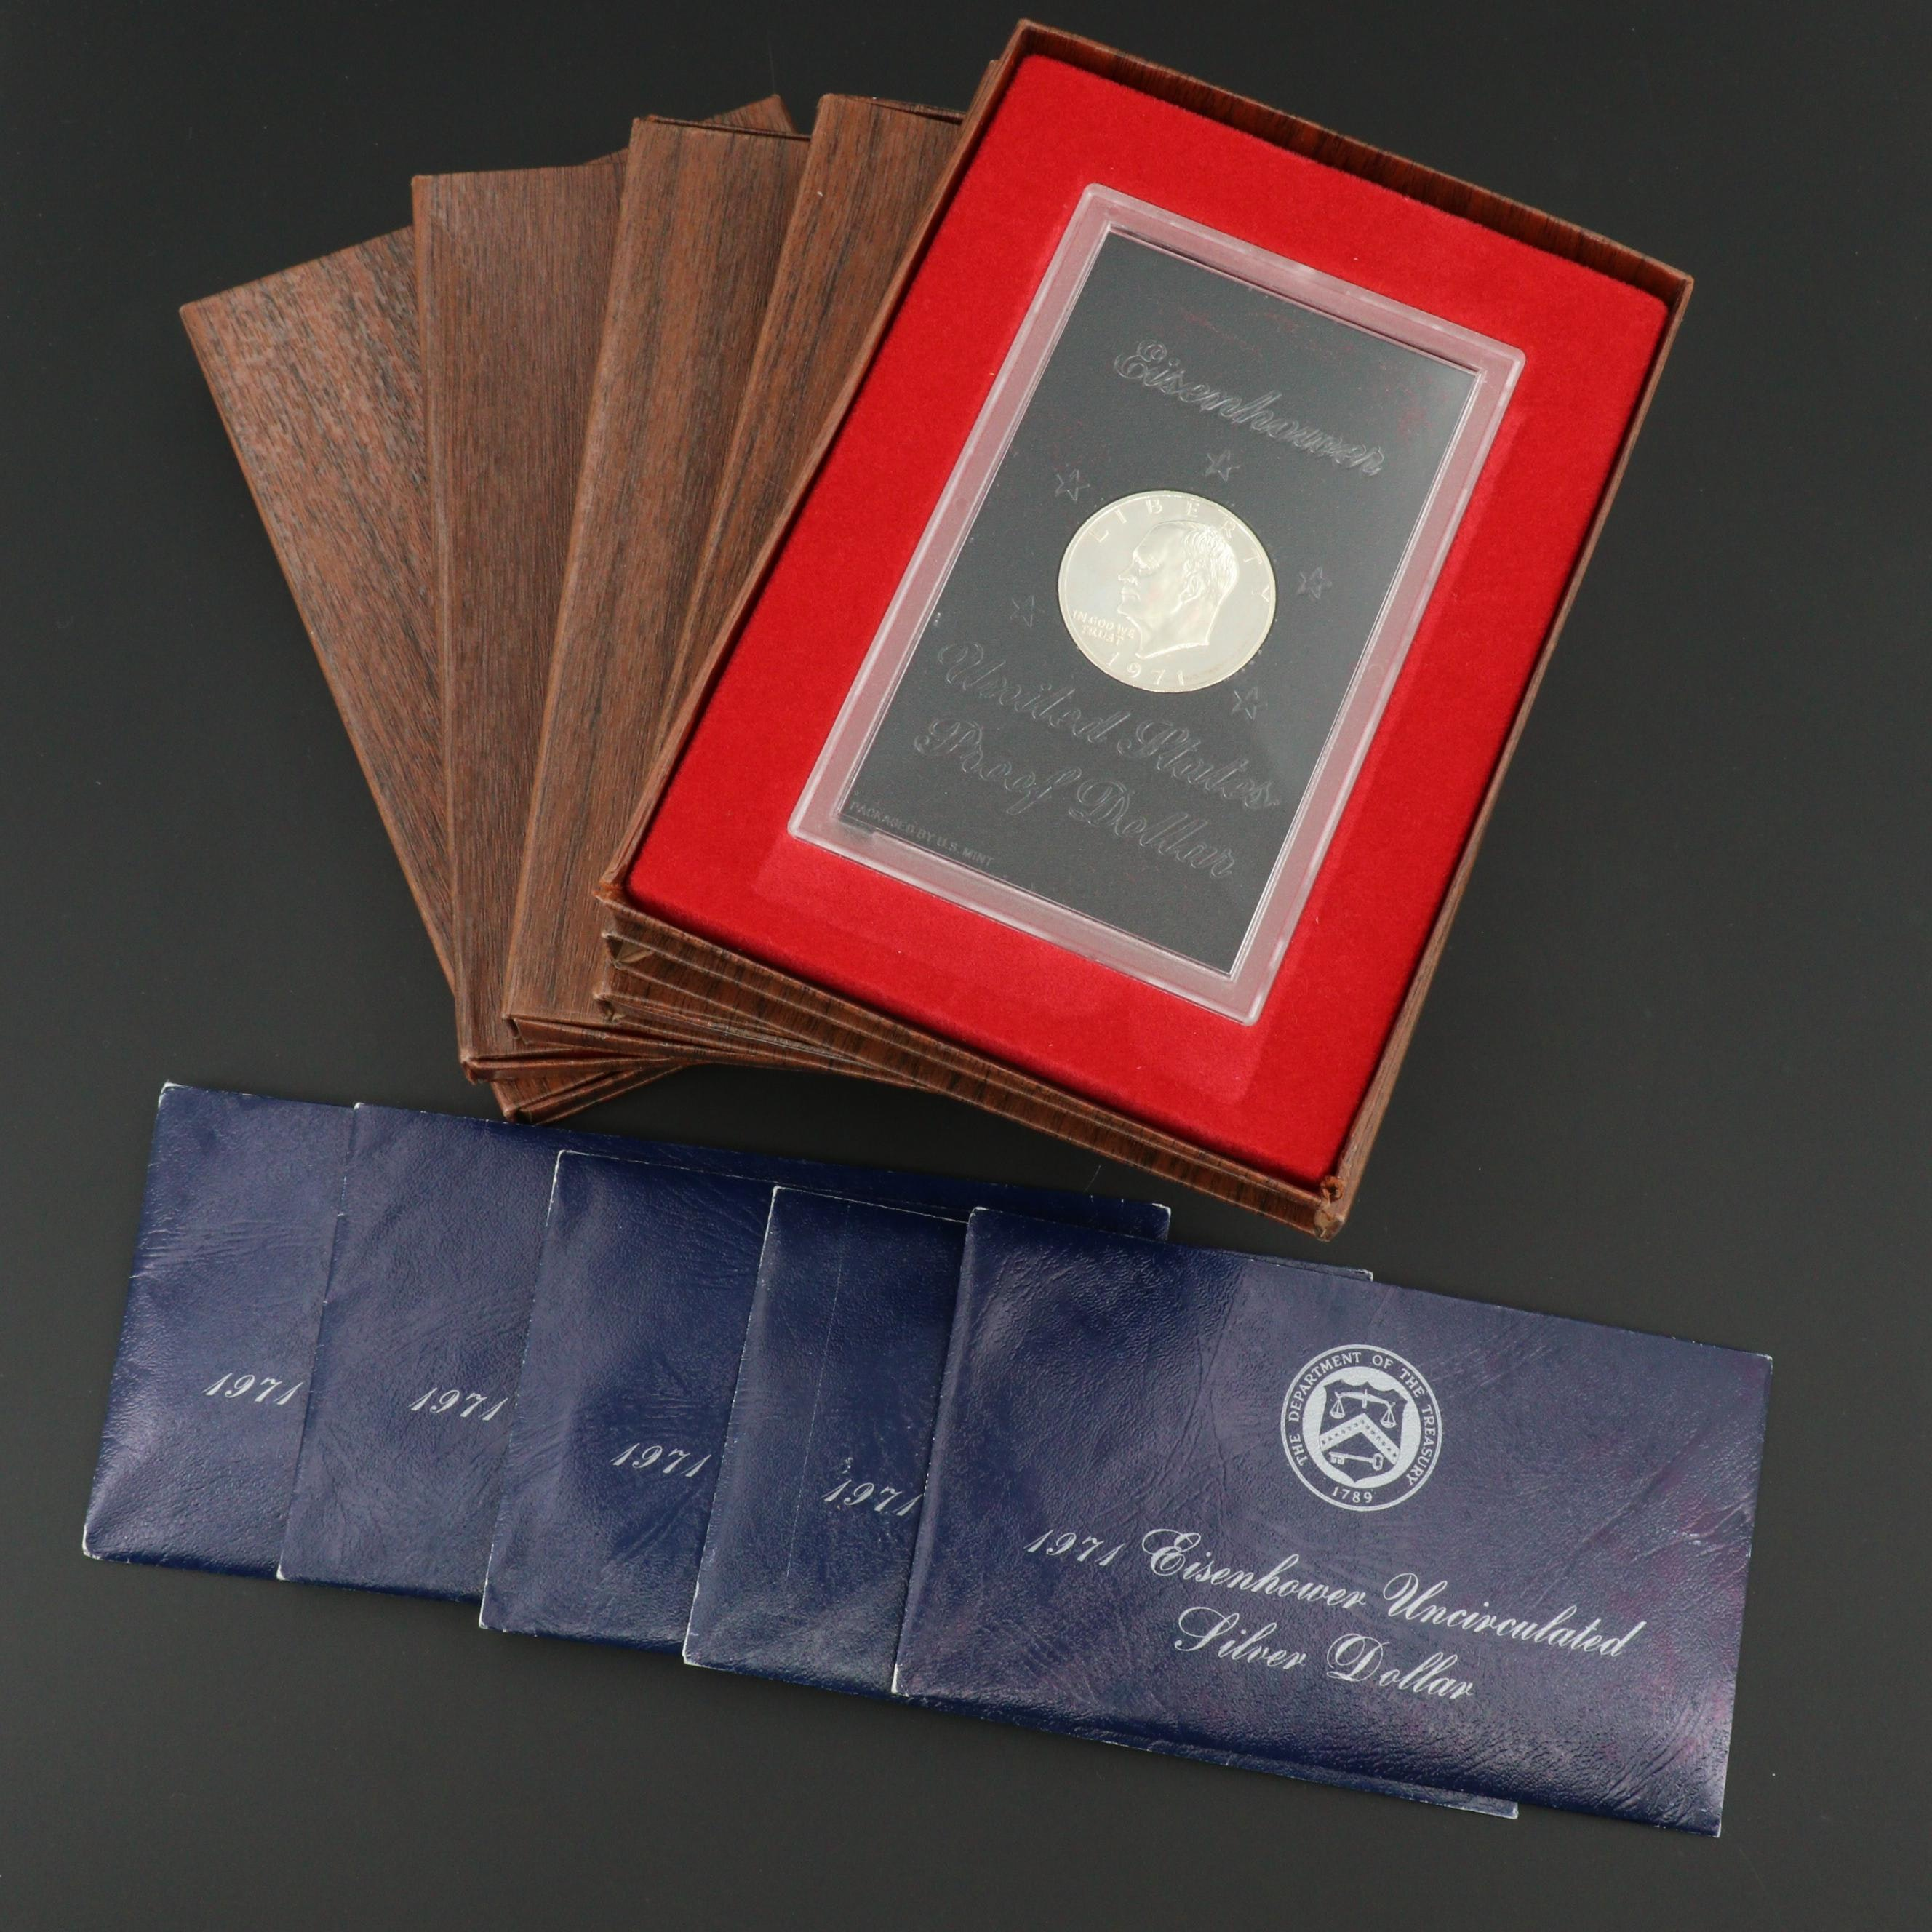 Ten 1971 Eisenhower Silver Dollars Including Five Proof and Five Uncirculated